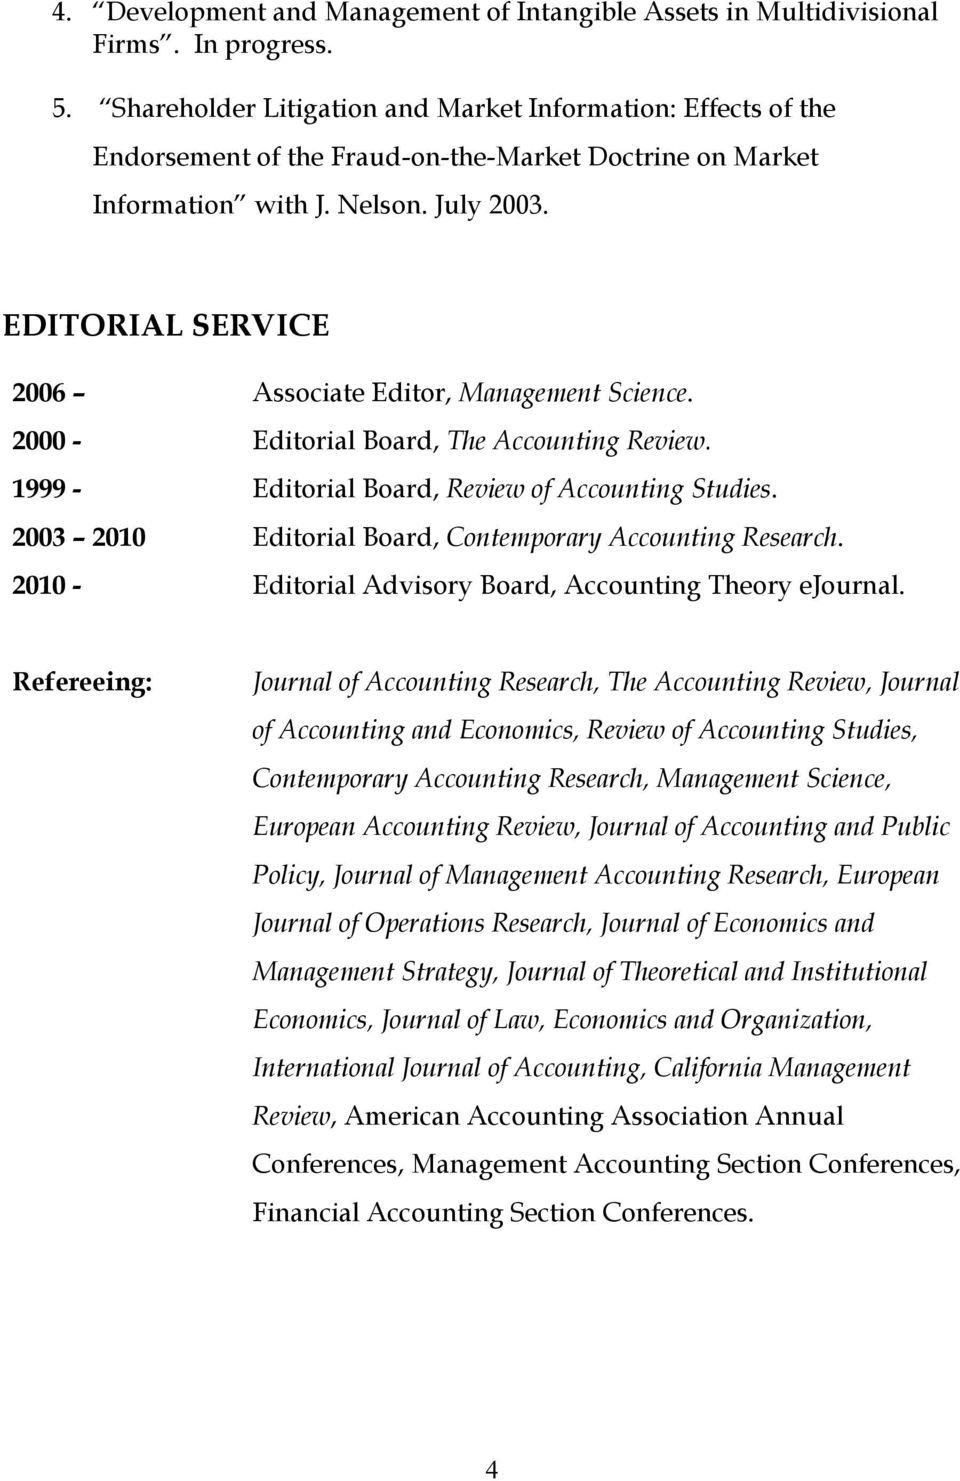 EDITORIAL SERVICE 2006 Associate Editor, Management Science. 2000 - Editorial Board, The Accounting Review. 1999 - Editorial Board, Review of Accounting Studies.